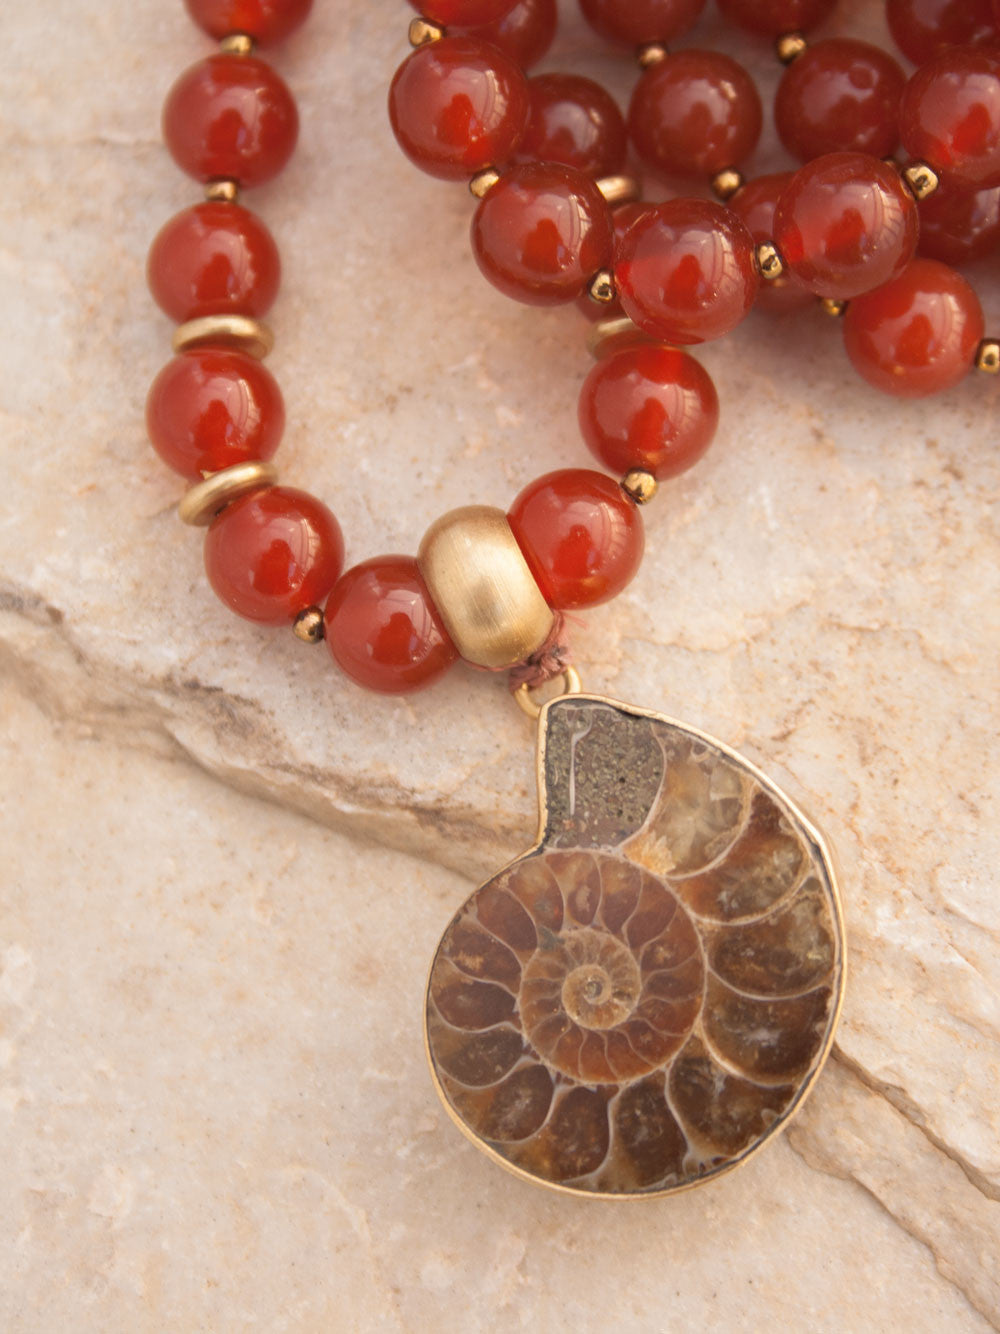 To Infinity... a Mala for celebration, in 8mm sienna Onyx with brass Guru bead and ammonite Nautilus pendant: Guru bead and Nautilus closeup view.